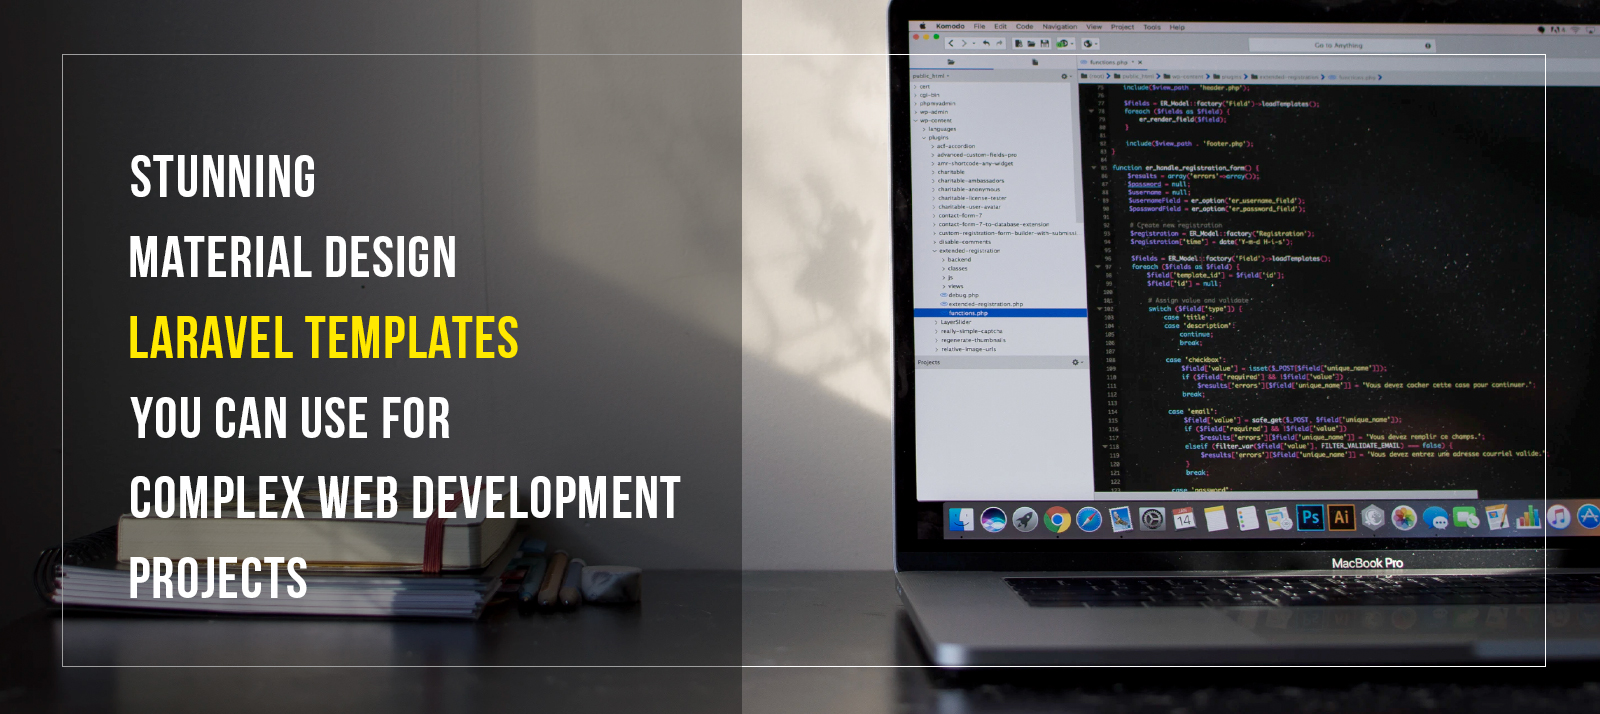 Stunning Material Design Laravel Templates You Can Use For Complex Web Development Projects